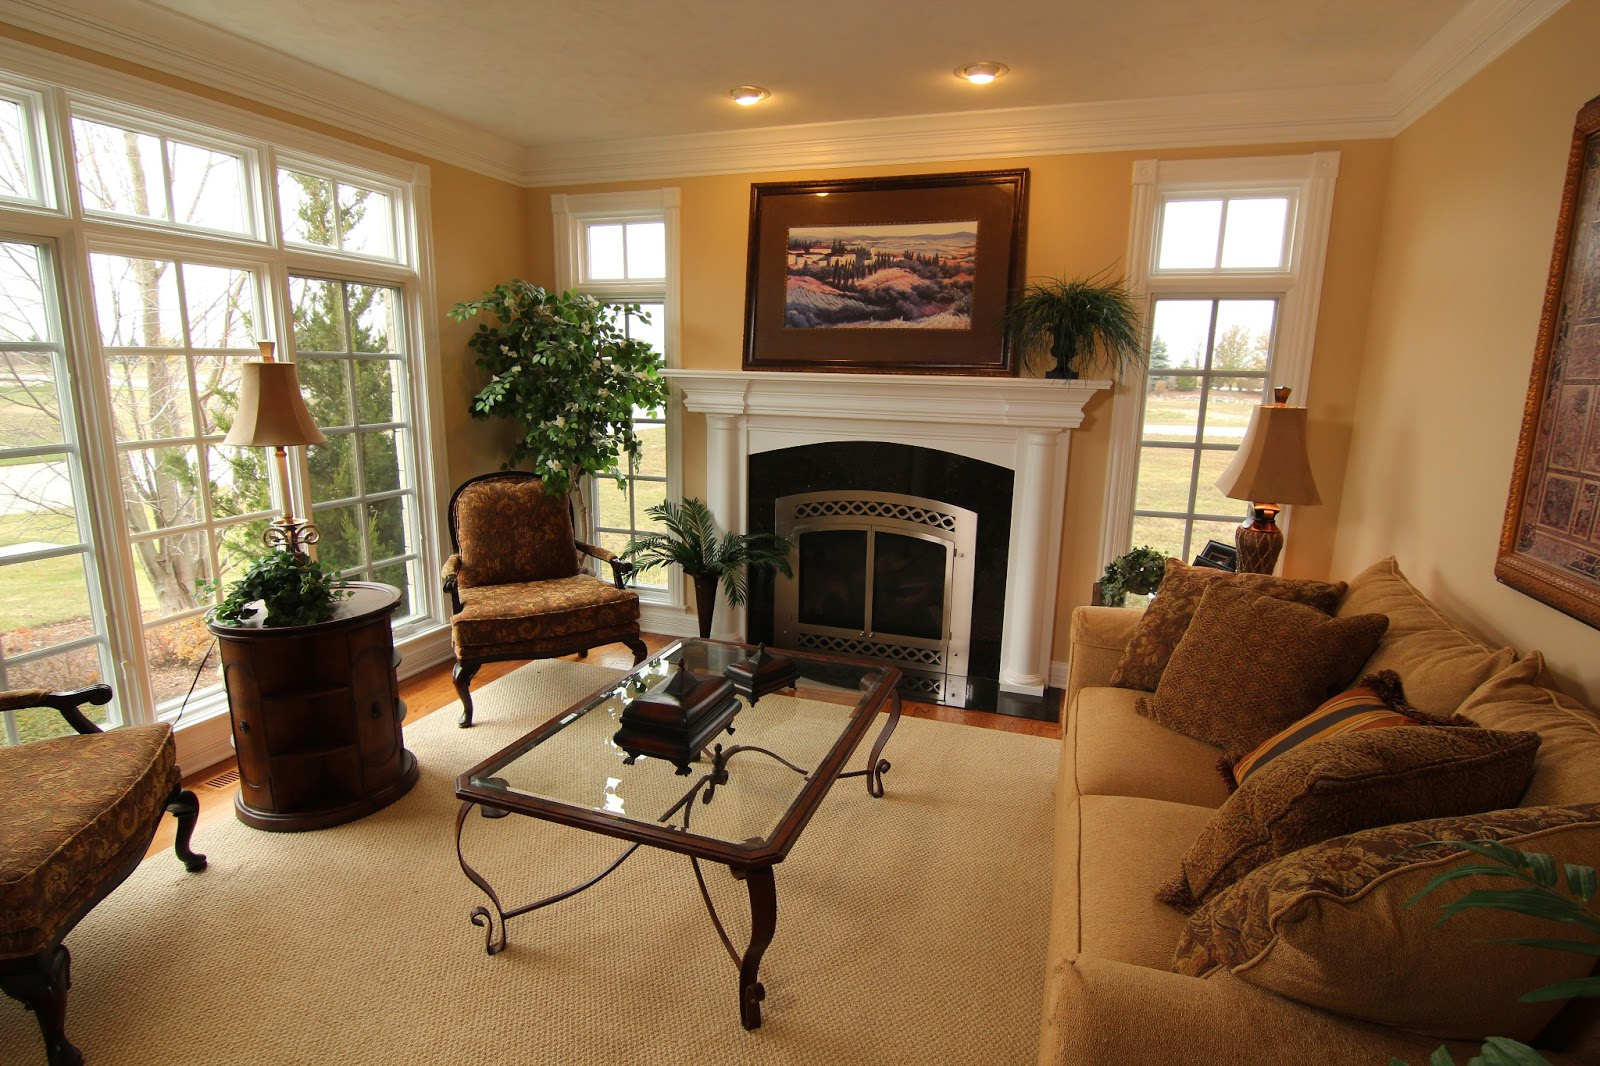 Home Channel TV Blog Cozy Fireplace Decor Tips For Keeping Warm In